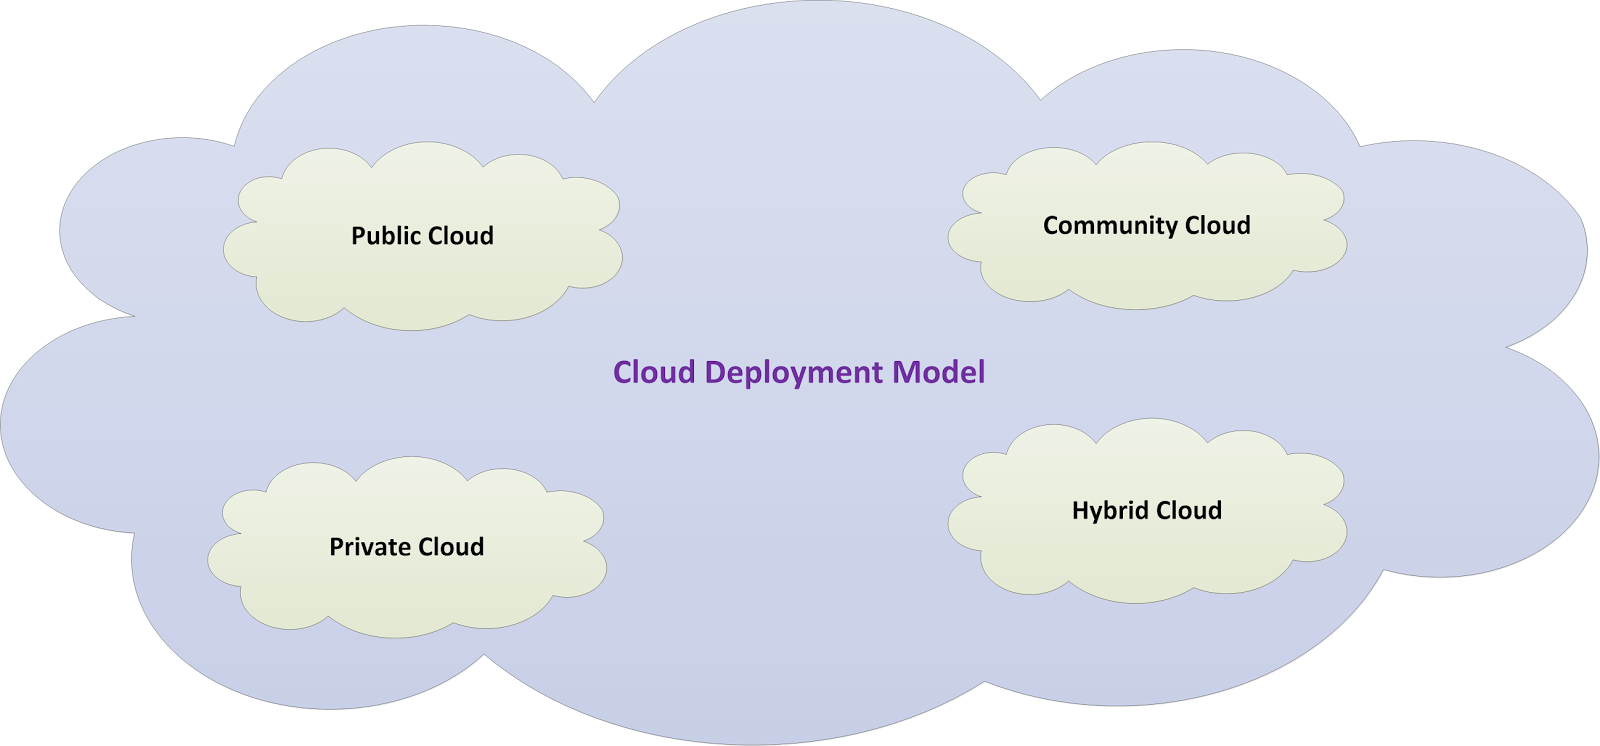 Cloud Deployment Model 4 Types With Examples